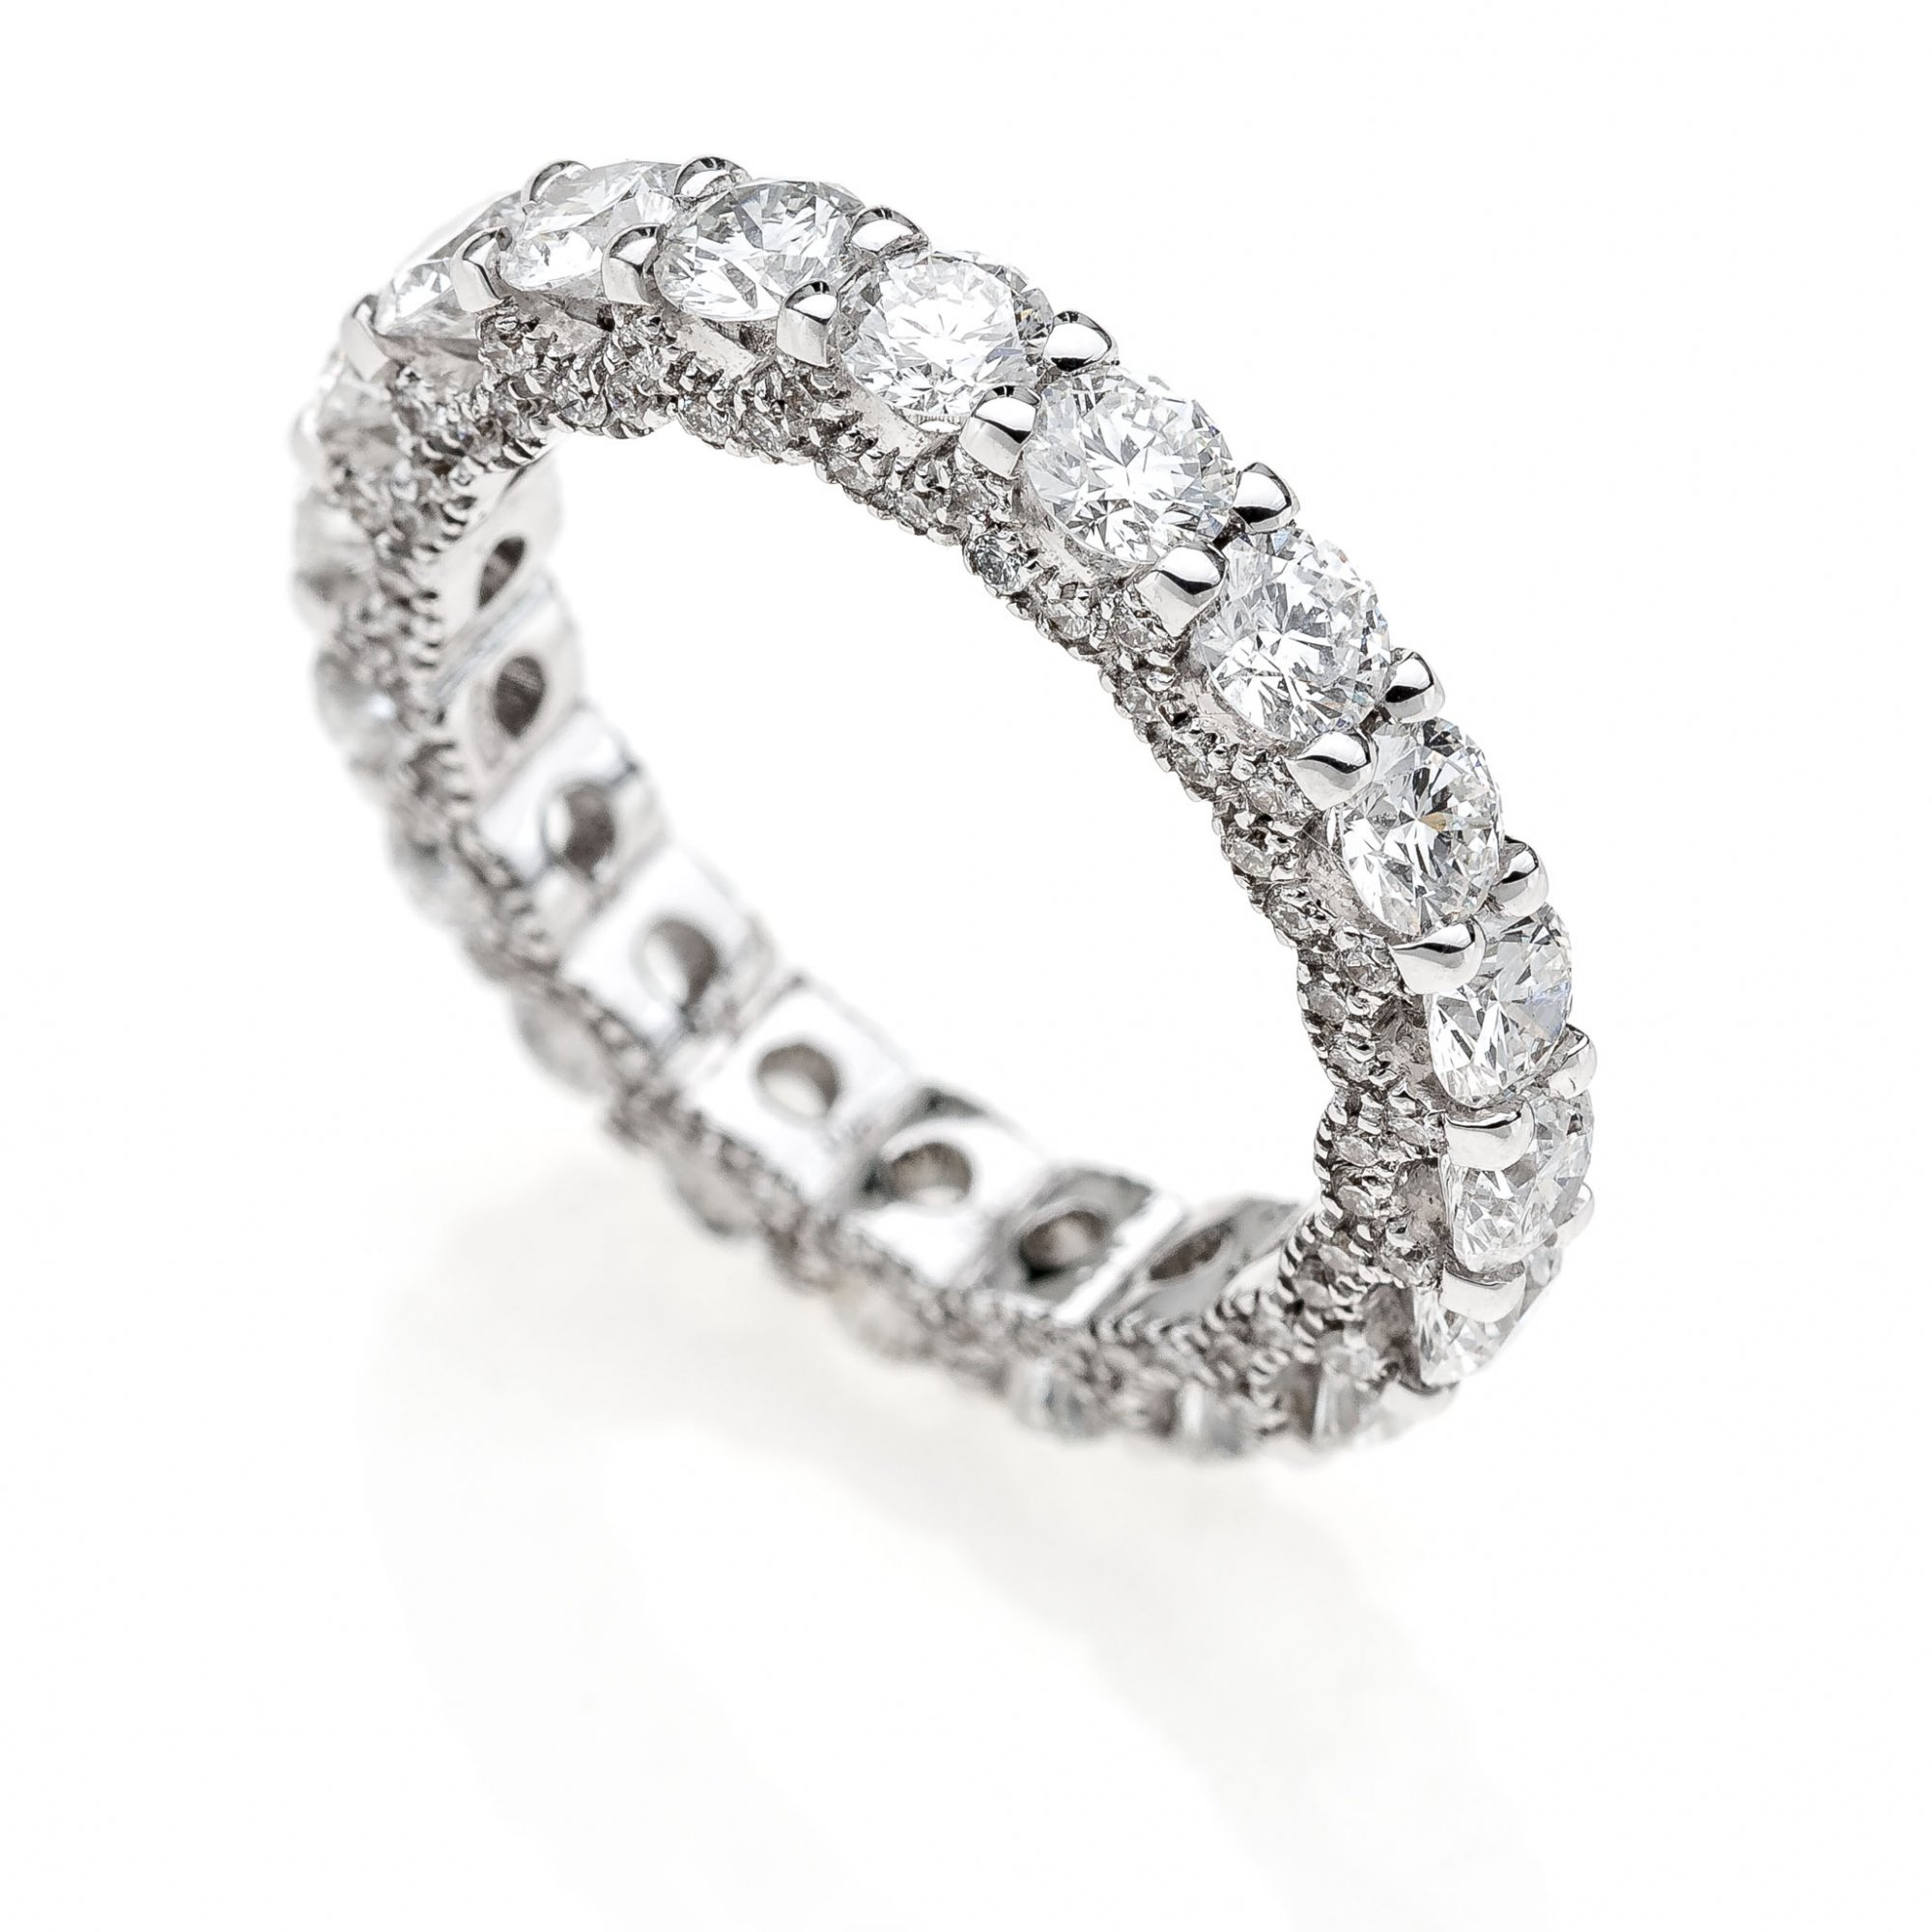 18 KT white gold Eternity ring with round brilliant cut diamonds ct.2.80 + ct.0.30 VVS1 E color